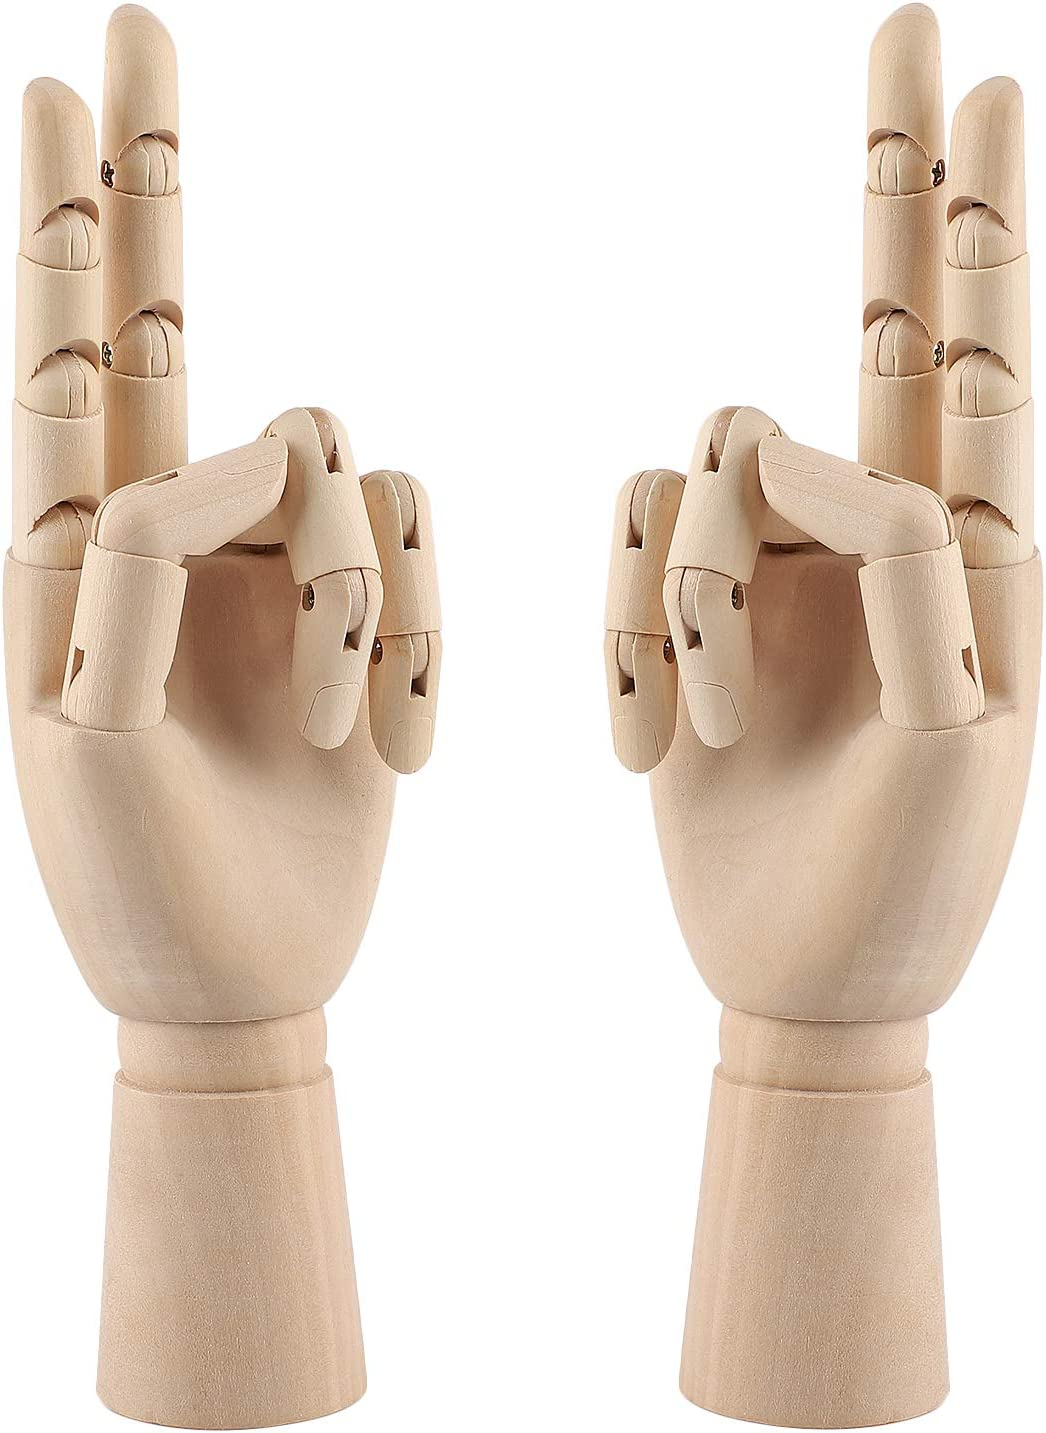 10 Inch Wooden Hand Model Flexible Moveable Fingers Manikin Hand Figure Left/Right Hand Model for Drawing, Sketching, Painting 71TCdEXBo6L